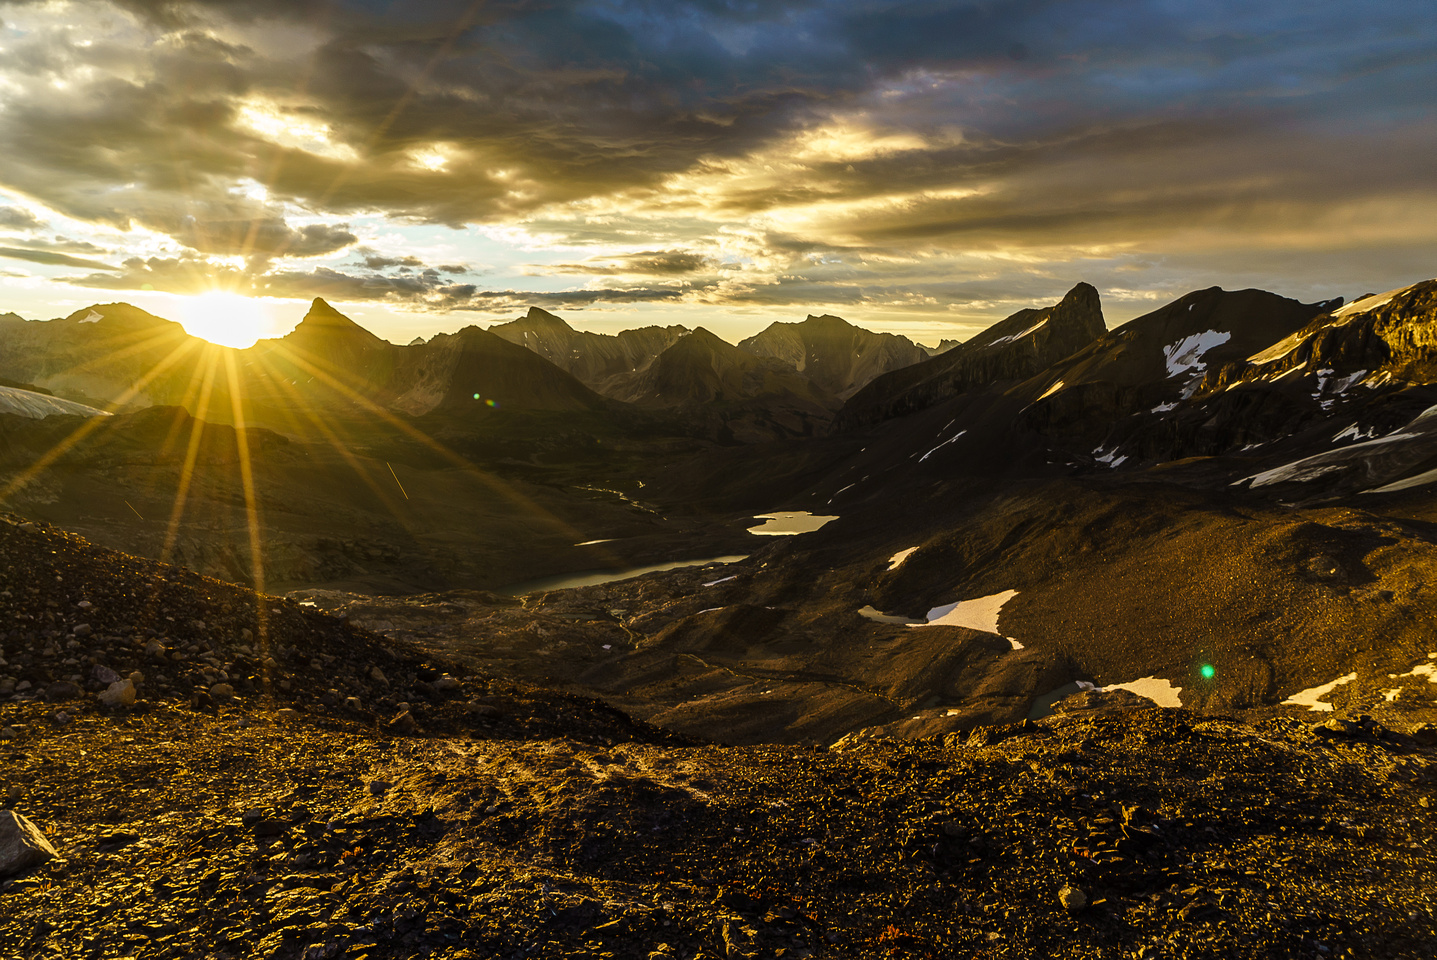 The morning view from camp looking over Swan Pass.